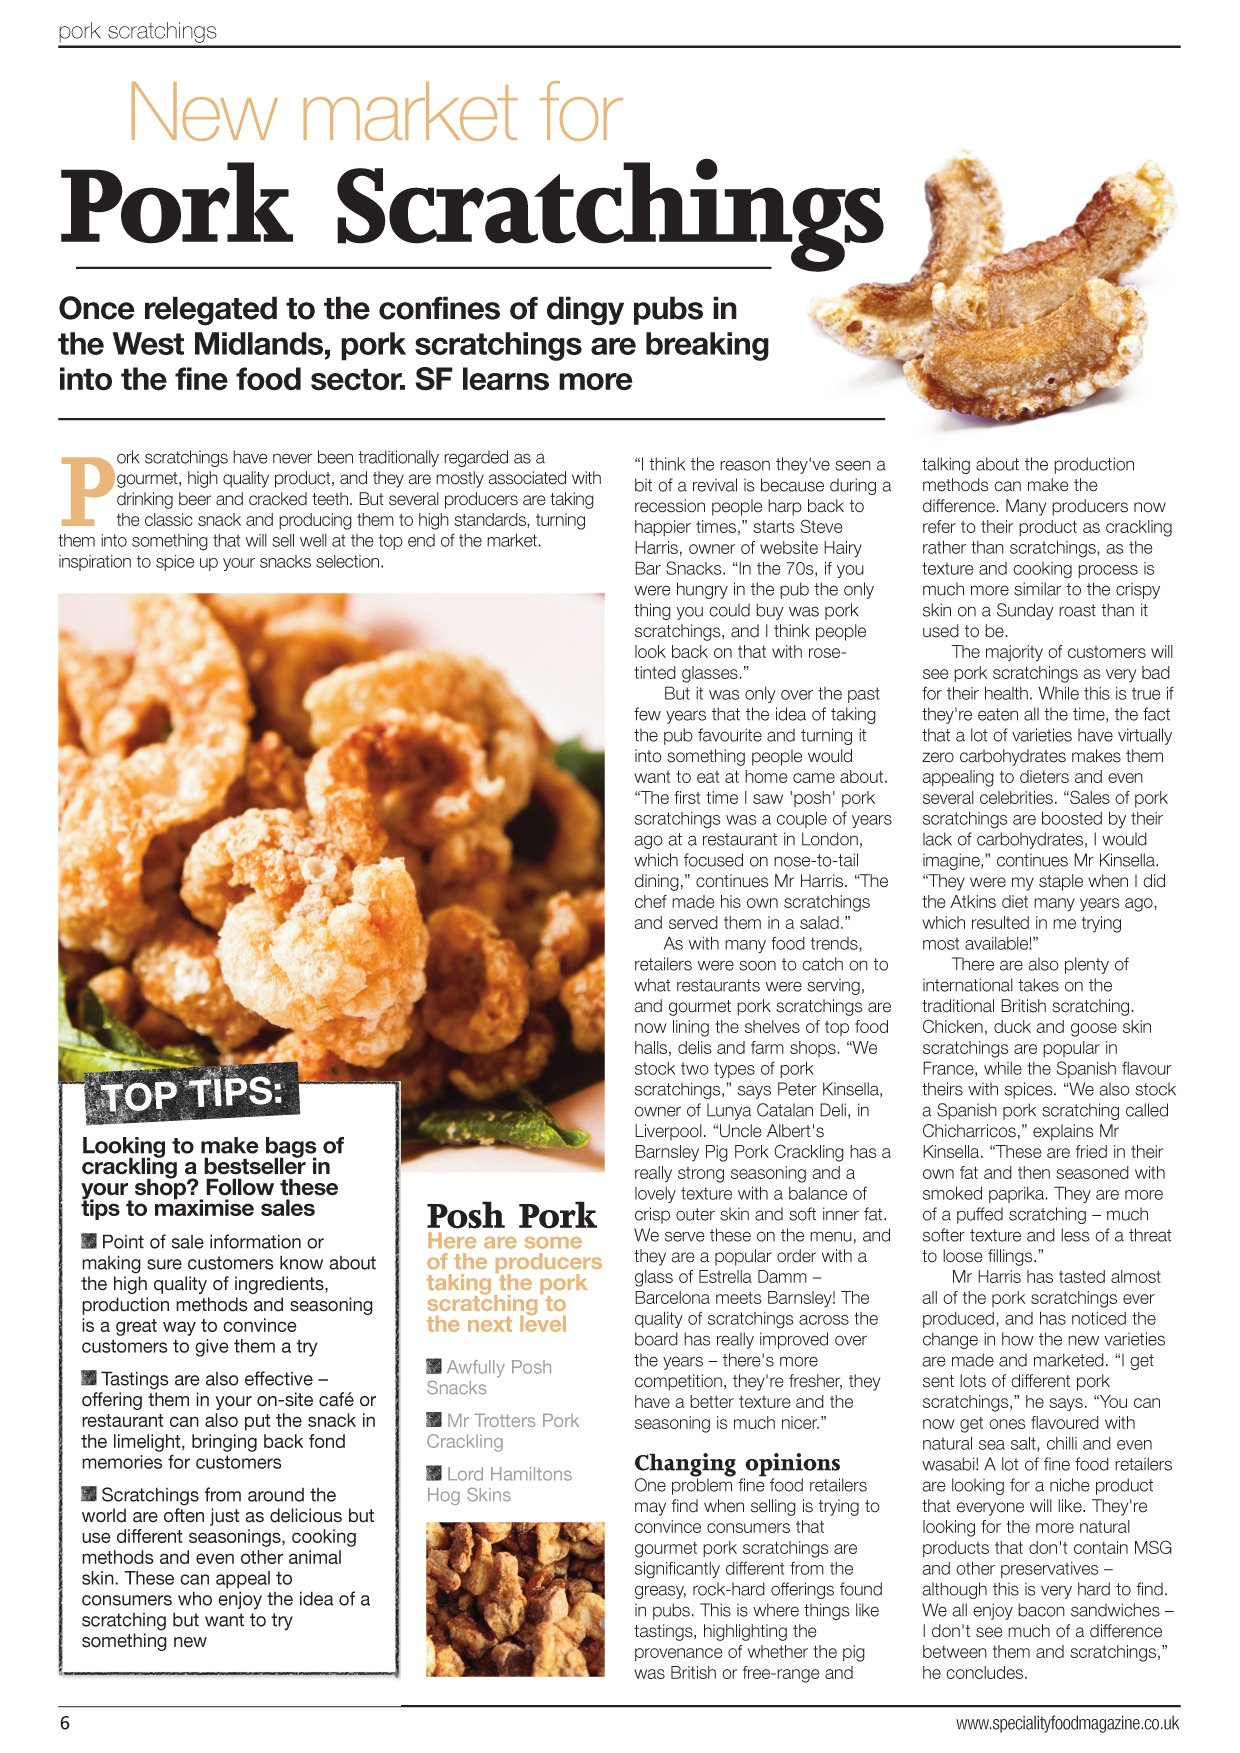 speciality food magazine article - Speciality Food Magazine Article